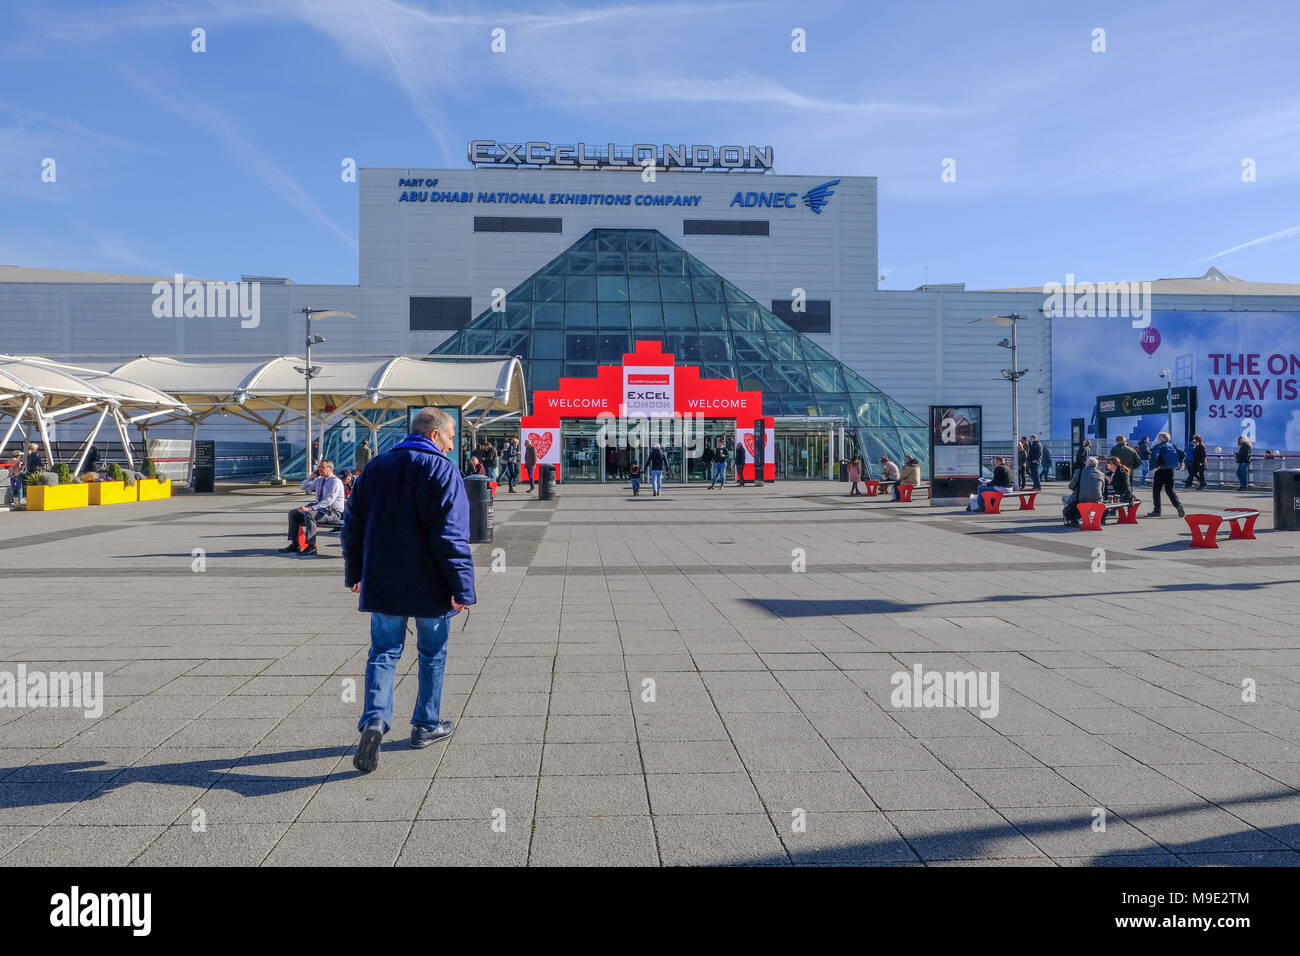 London, UK - February 16, 2018: Rear view of man walking towards the entrace of Excel Exhibition Centre at Royal Docks, London. - Stock Image